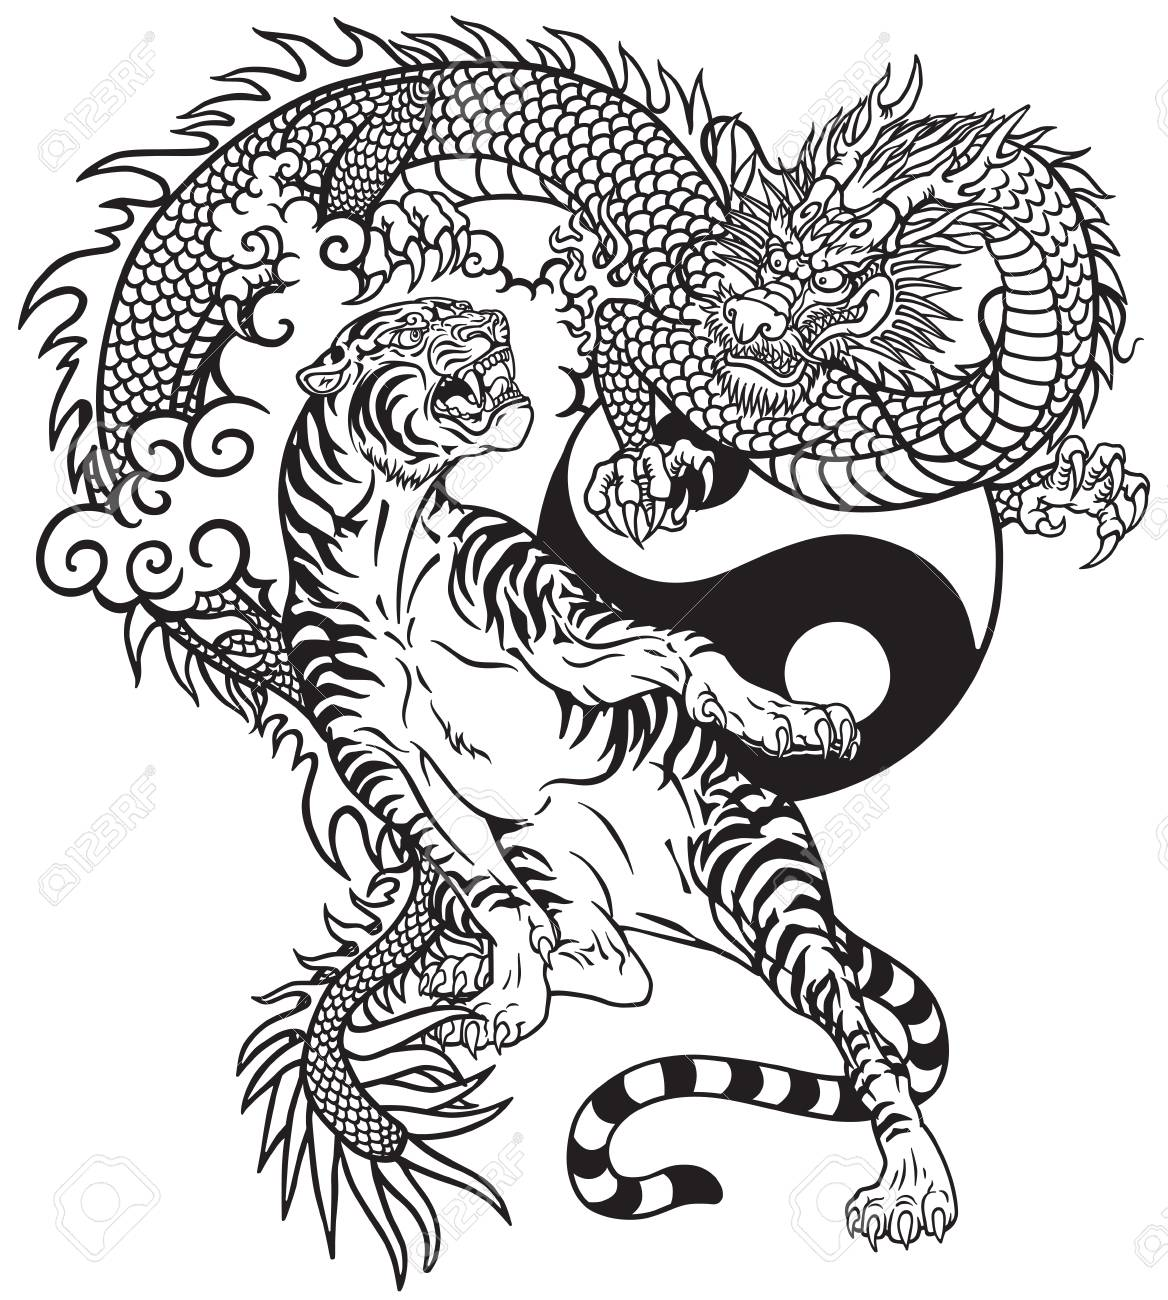 Chinese Dragon Versus Tiger Black And White Tattoo Vector